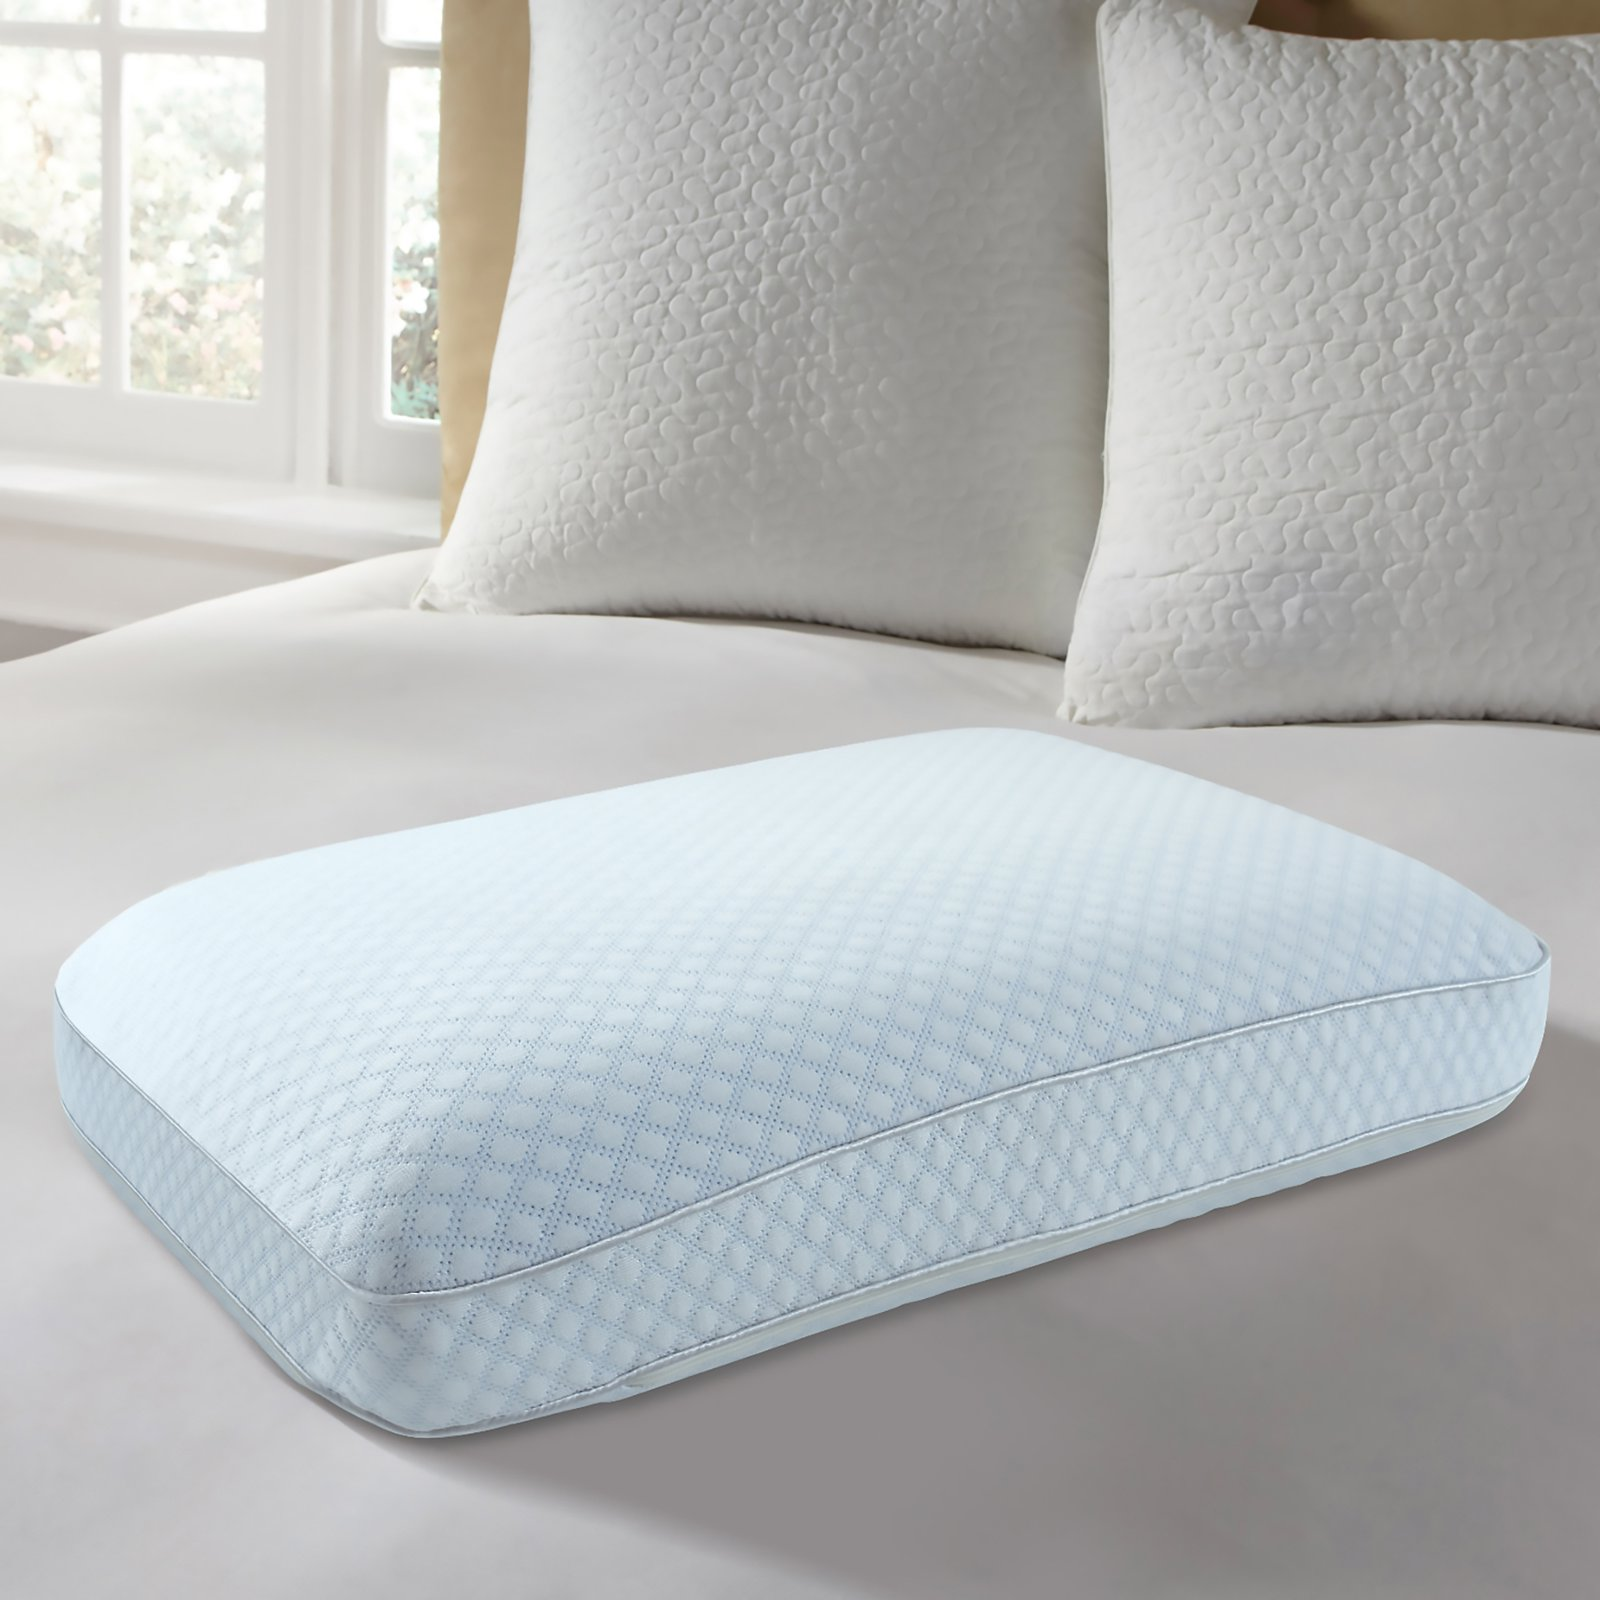 EUROPEUDIC Big and Soft Cooling Gel Ventilated Memory Foam Gel Pillow